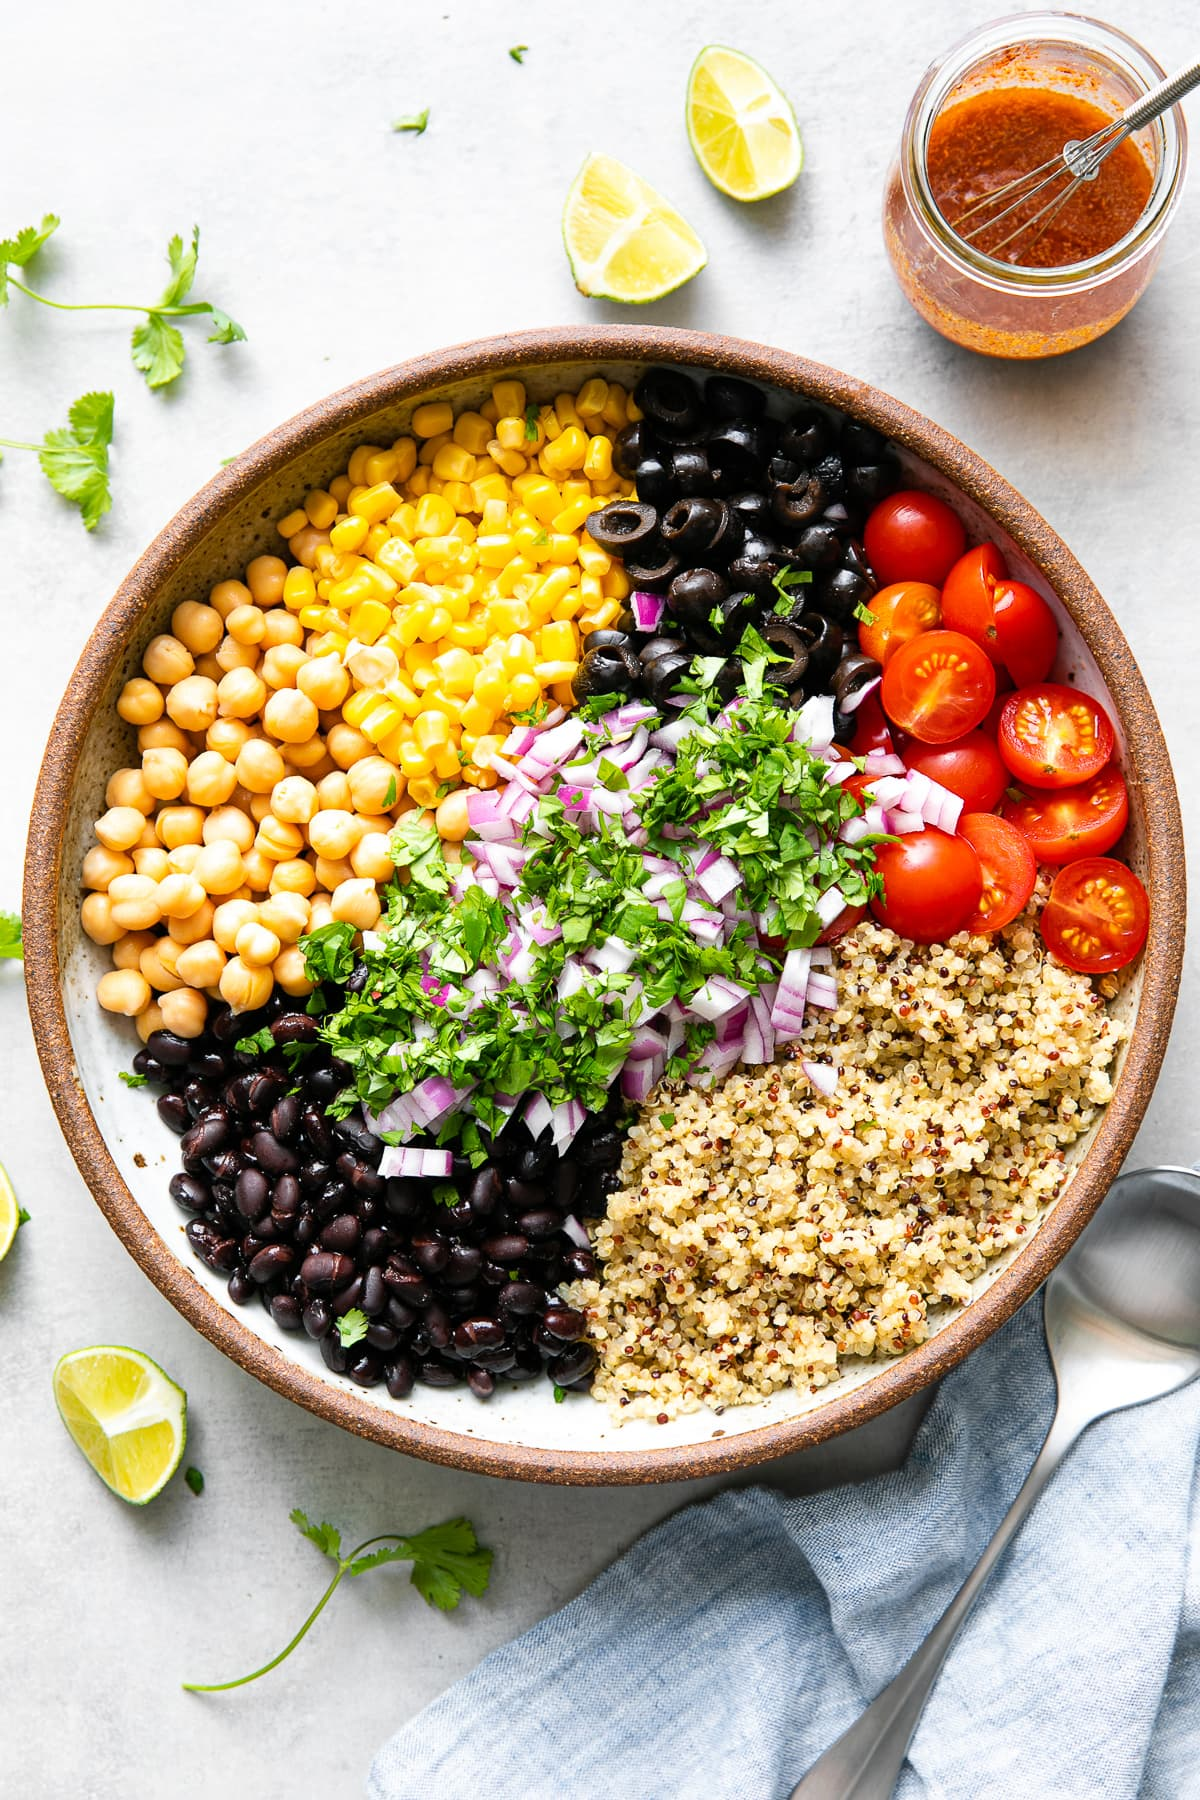 top down view of bowl filled with ingredients used to make southwest quinoa salad.